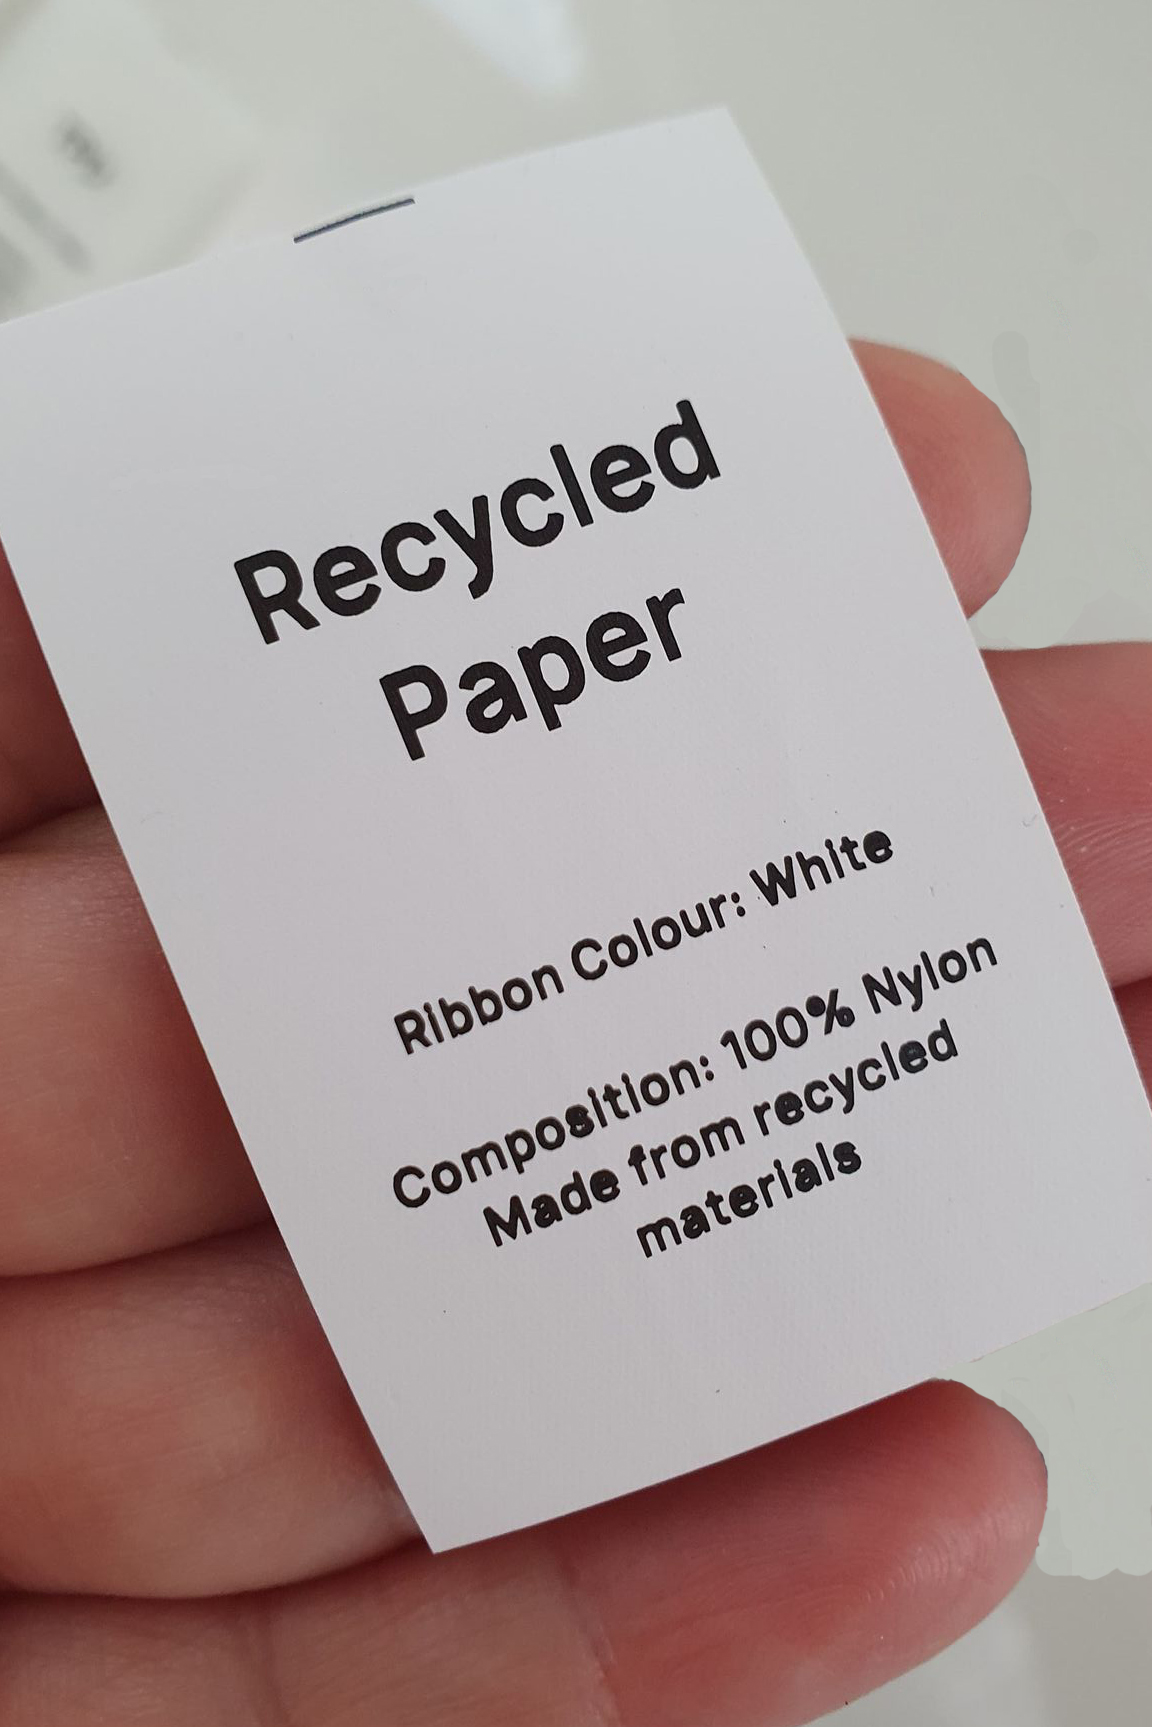 recycled-paper.jpg